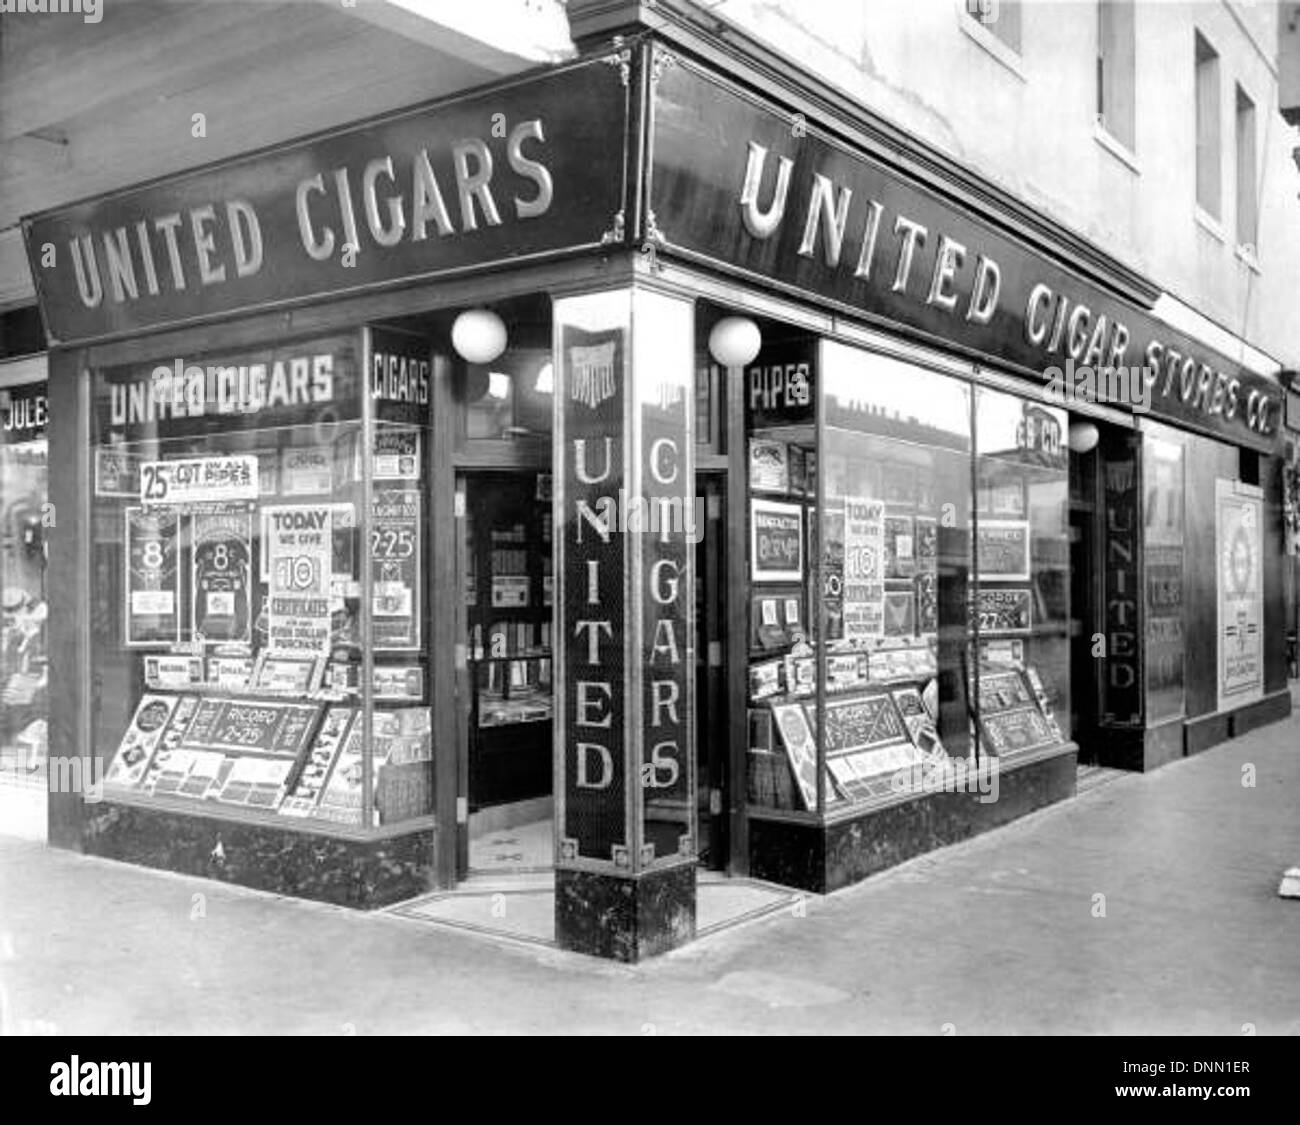 General Store Stock Photos General Store Stock Images: General Cigar Company Stock Photos & General Cigar Company